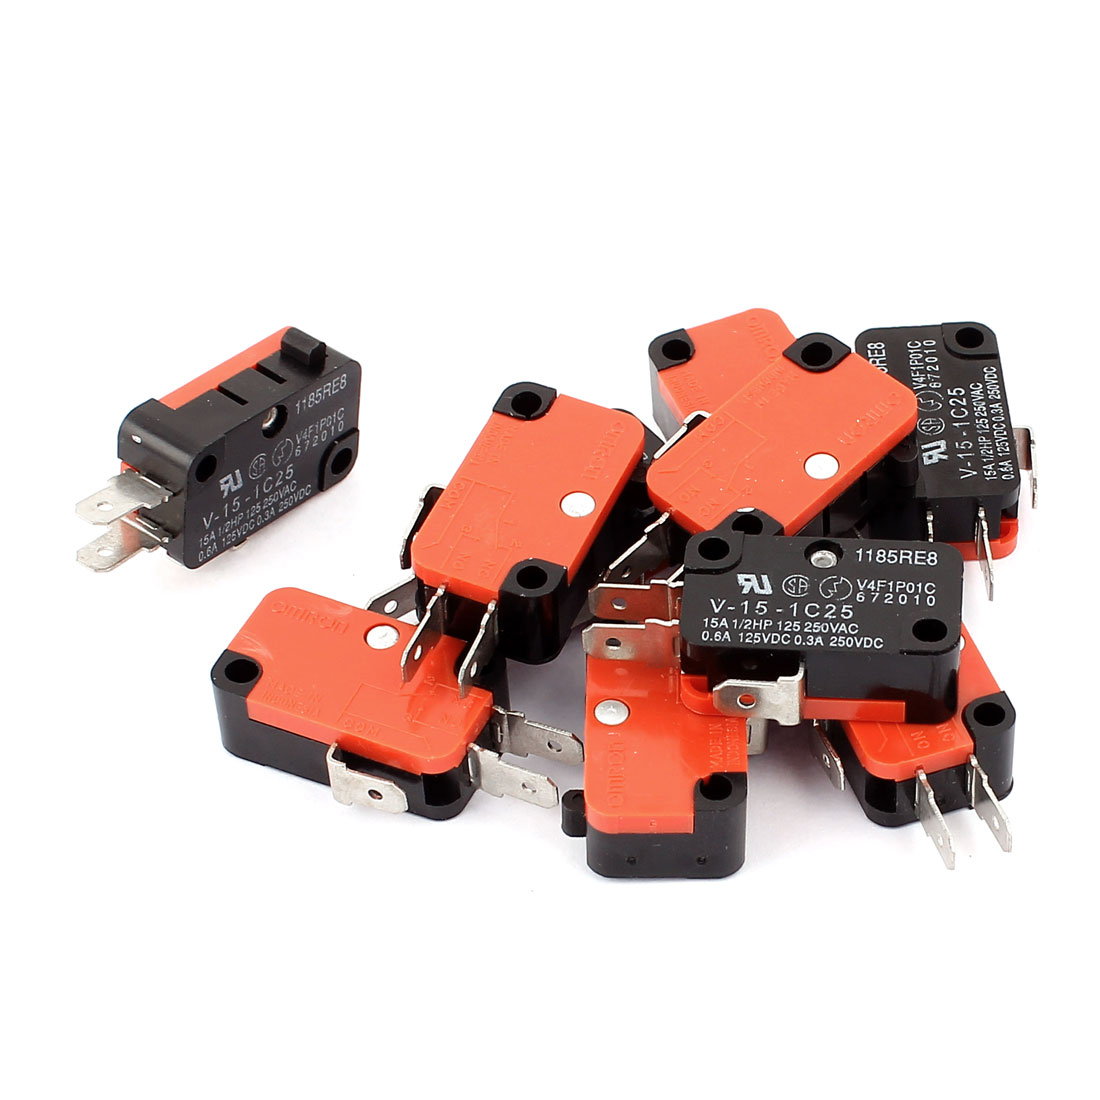 10 Pcs Momentary Subminiature SPDT NO NC Limit Switch AC/DC 125V 250V